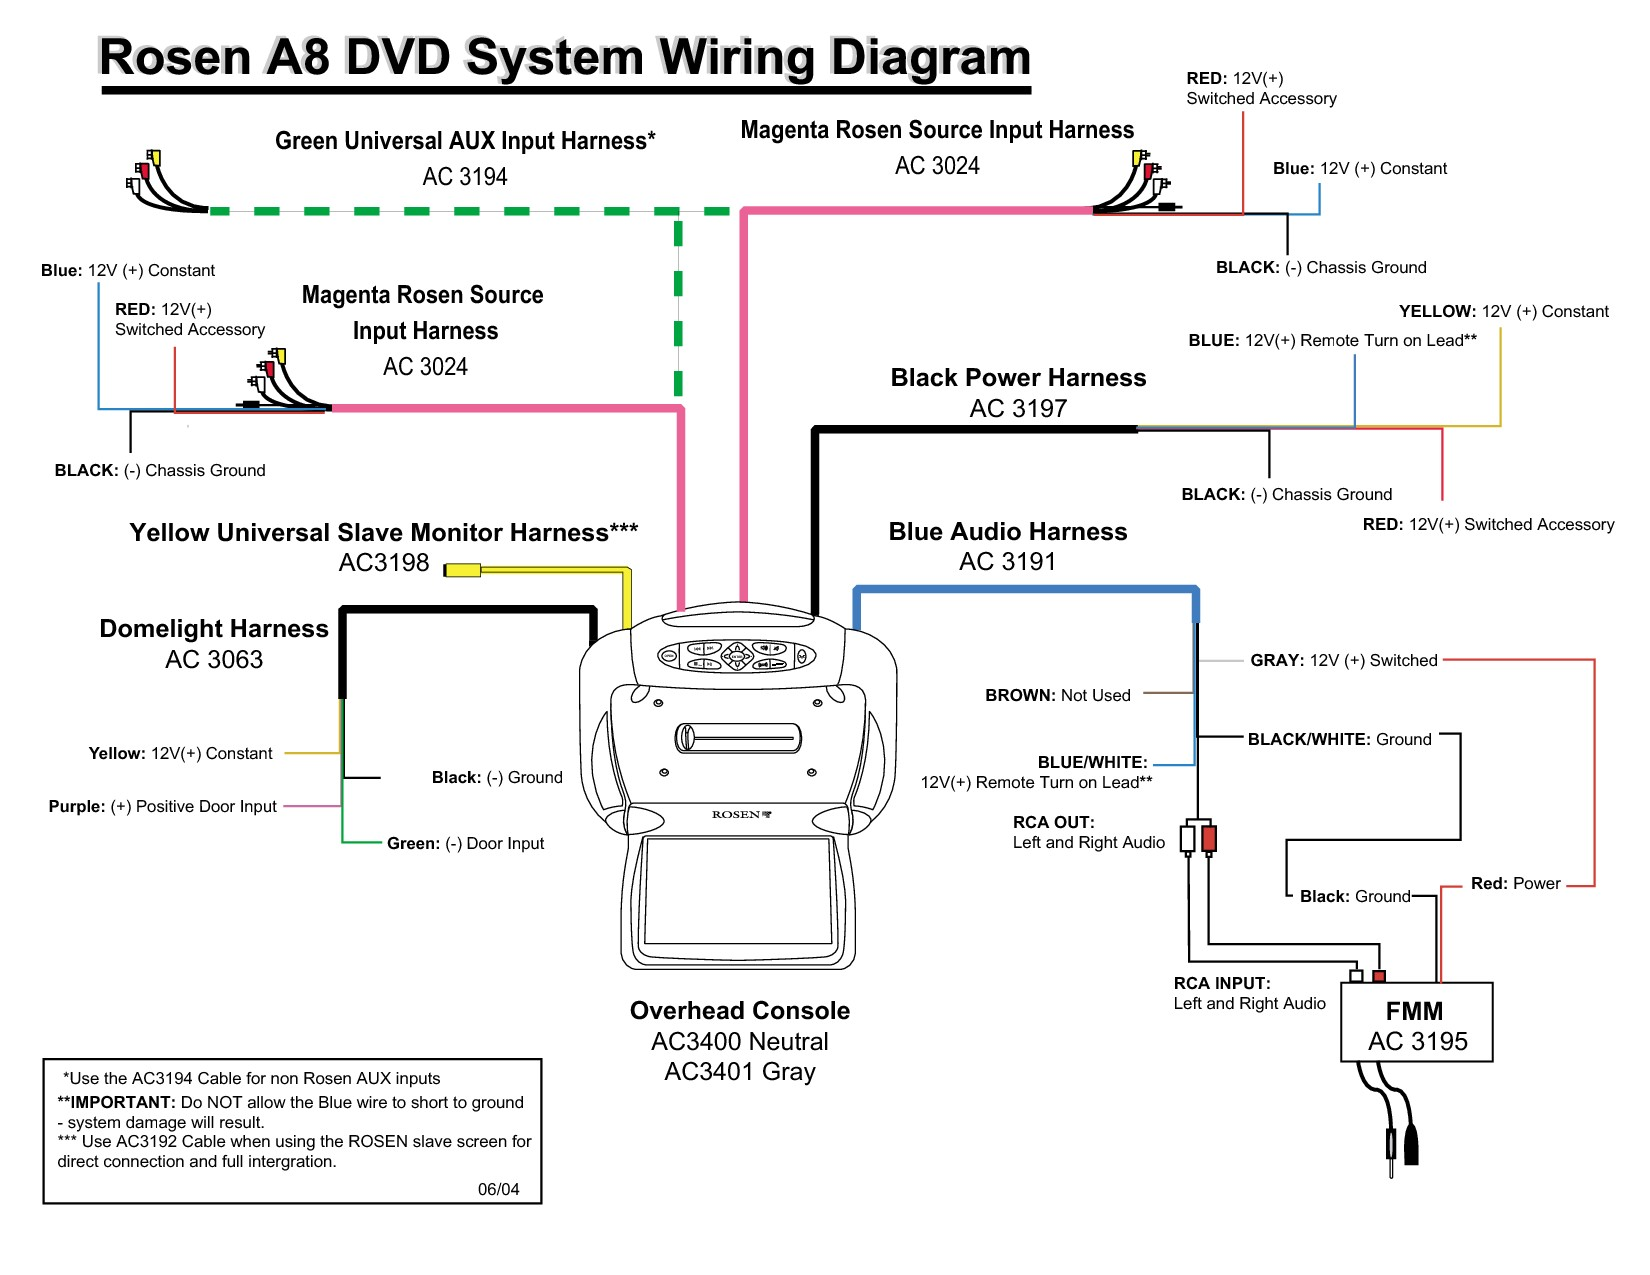 DIAGRAM] Viper 5701 Wiring Diagram FULL Version HD Quality Wiring Diagram -  HPVDIAGRAMS.ARKIS.ITarkis.it